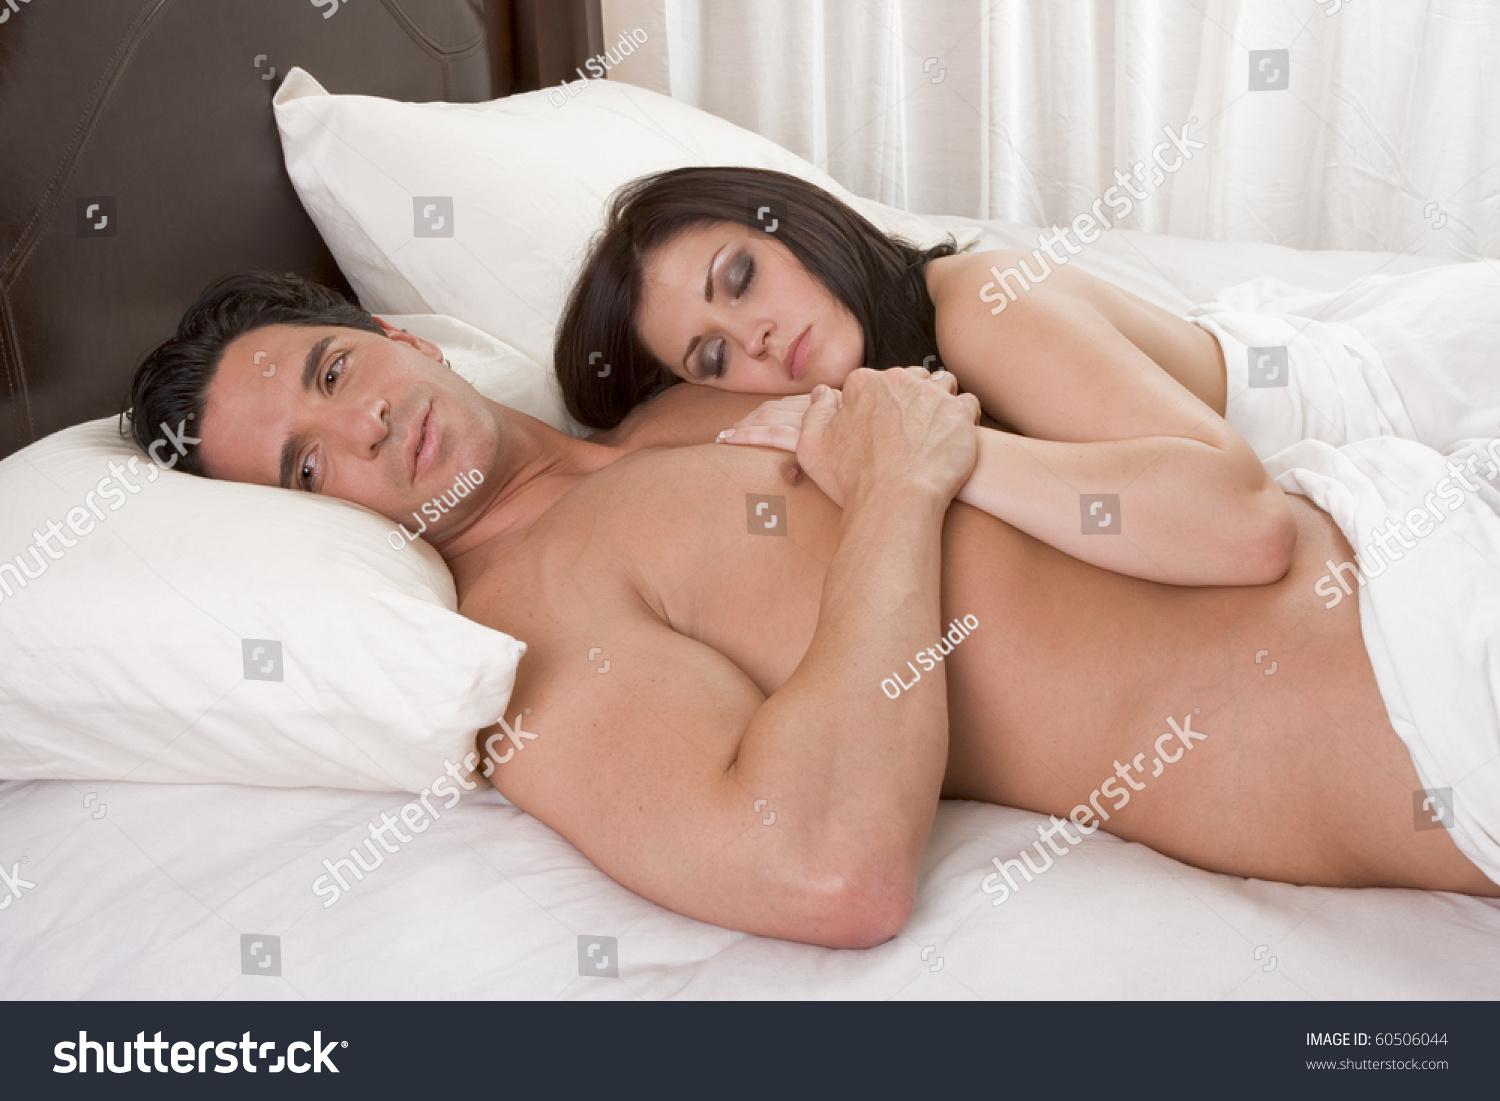 nude girl and boy bed sex